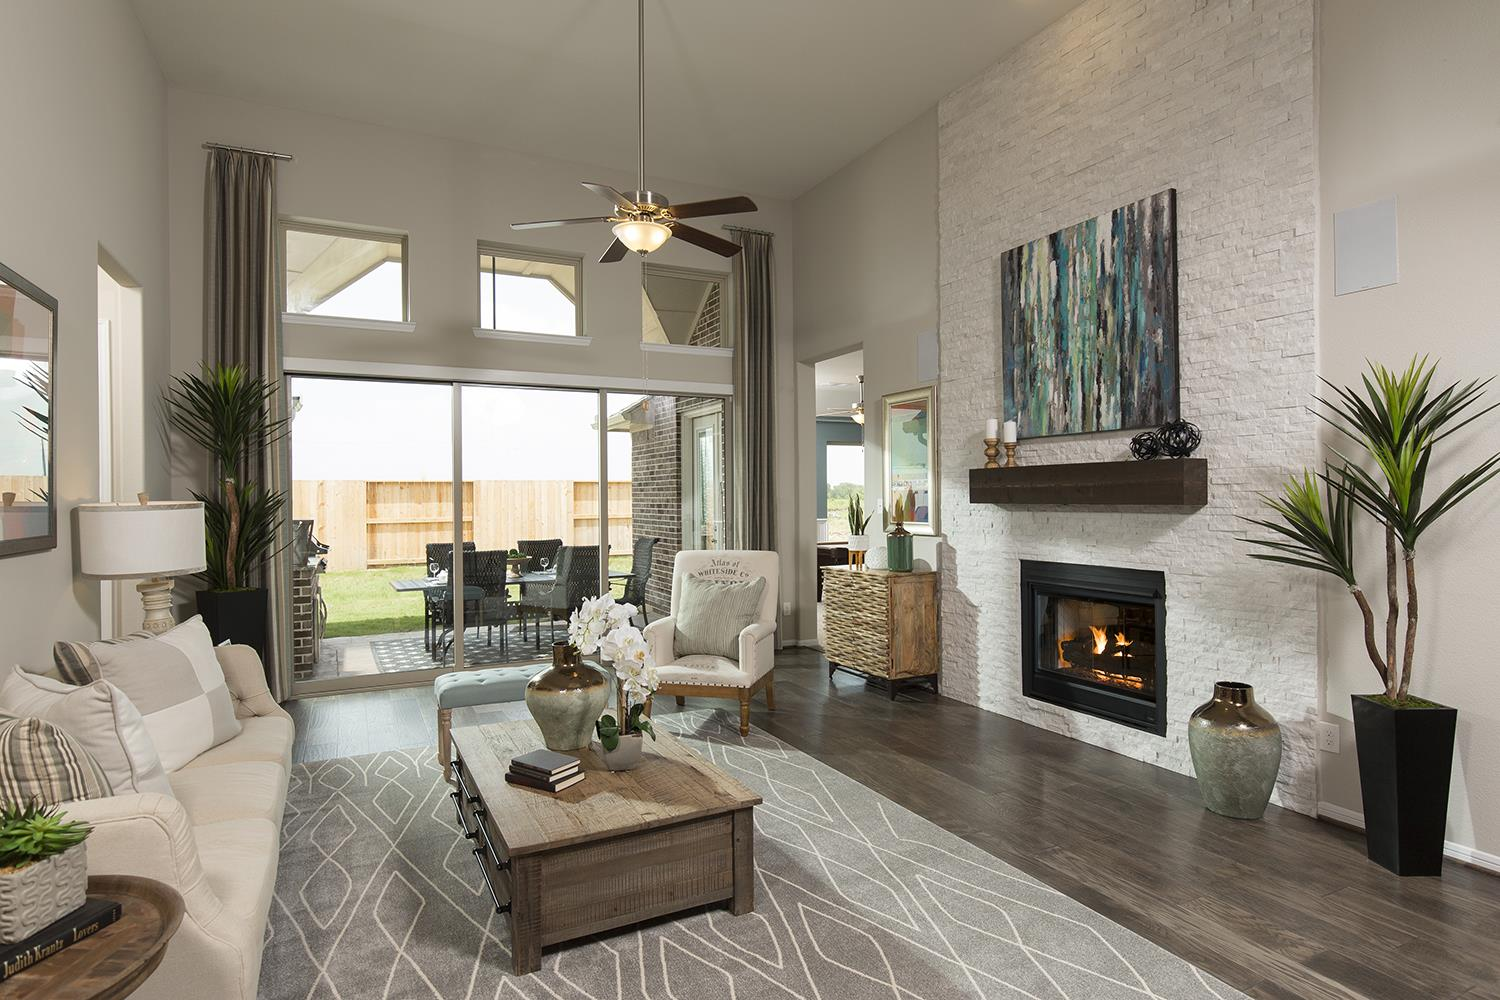 Three Beautiful New Model Homes in the Houston Area